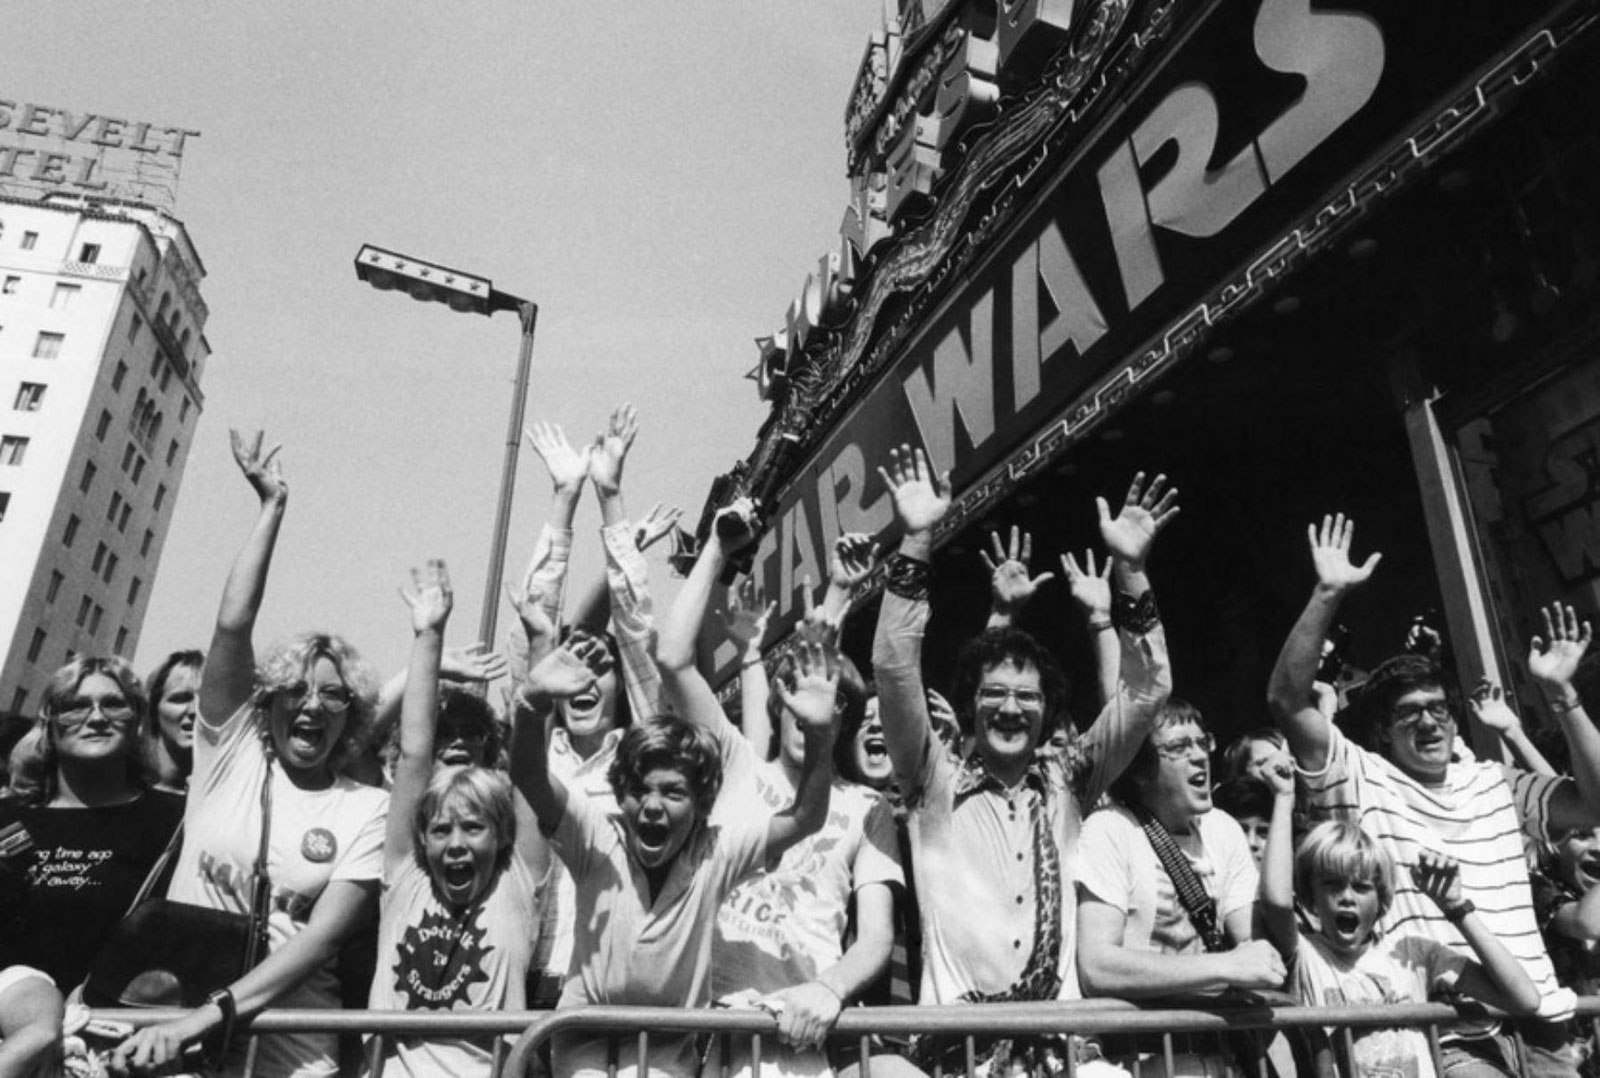 40 Years Ago, Star Wars Changed Movies Forever